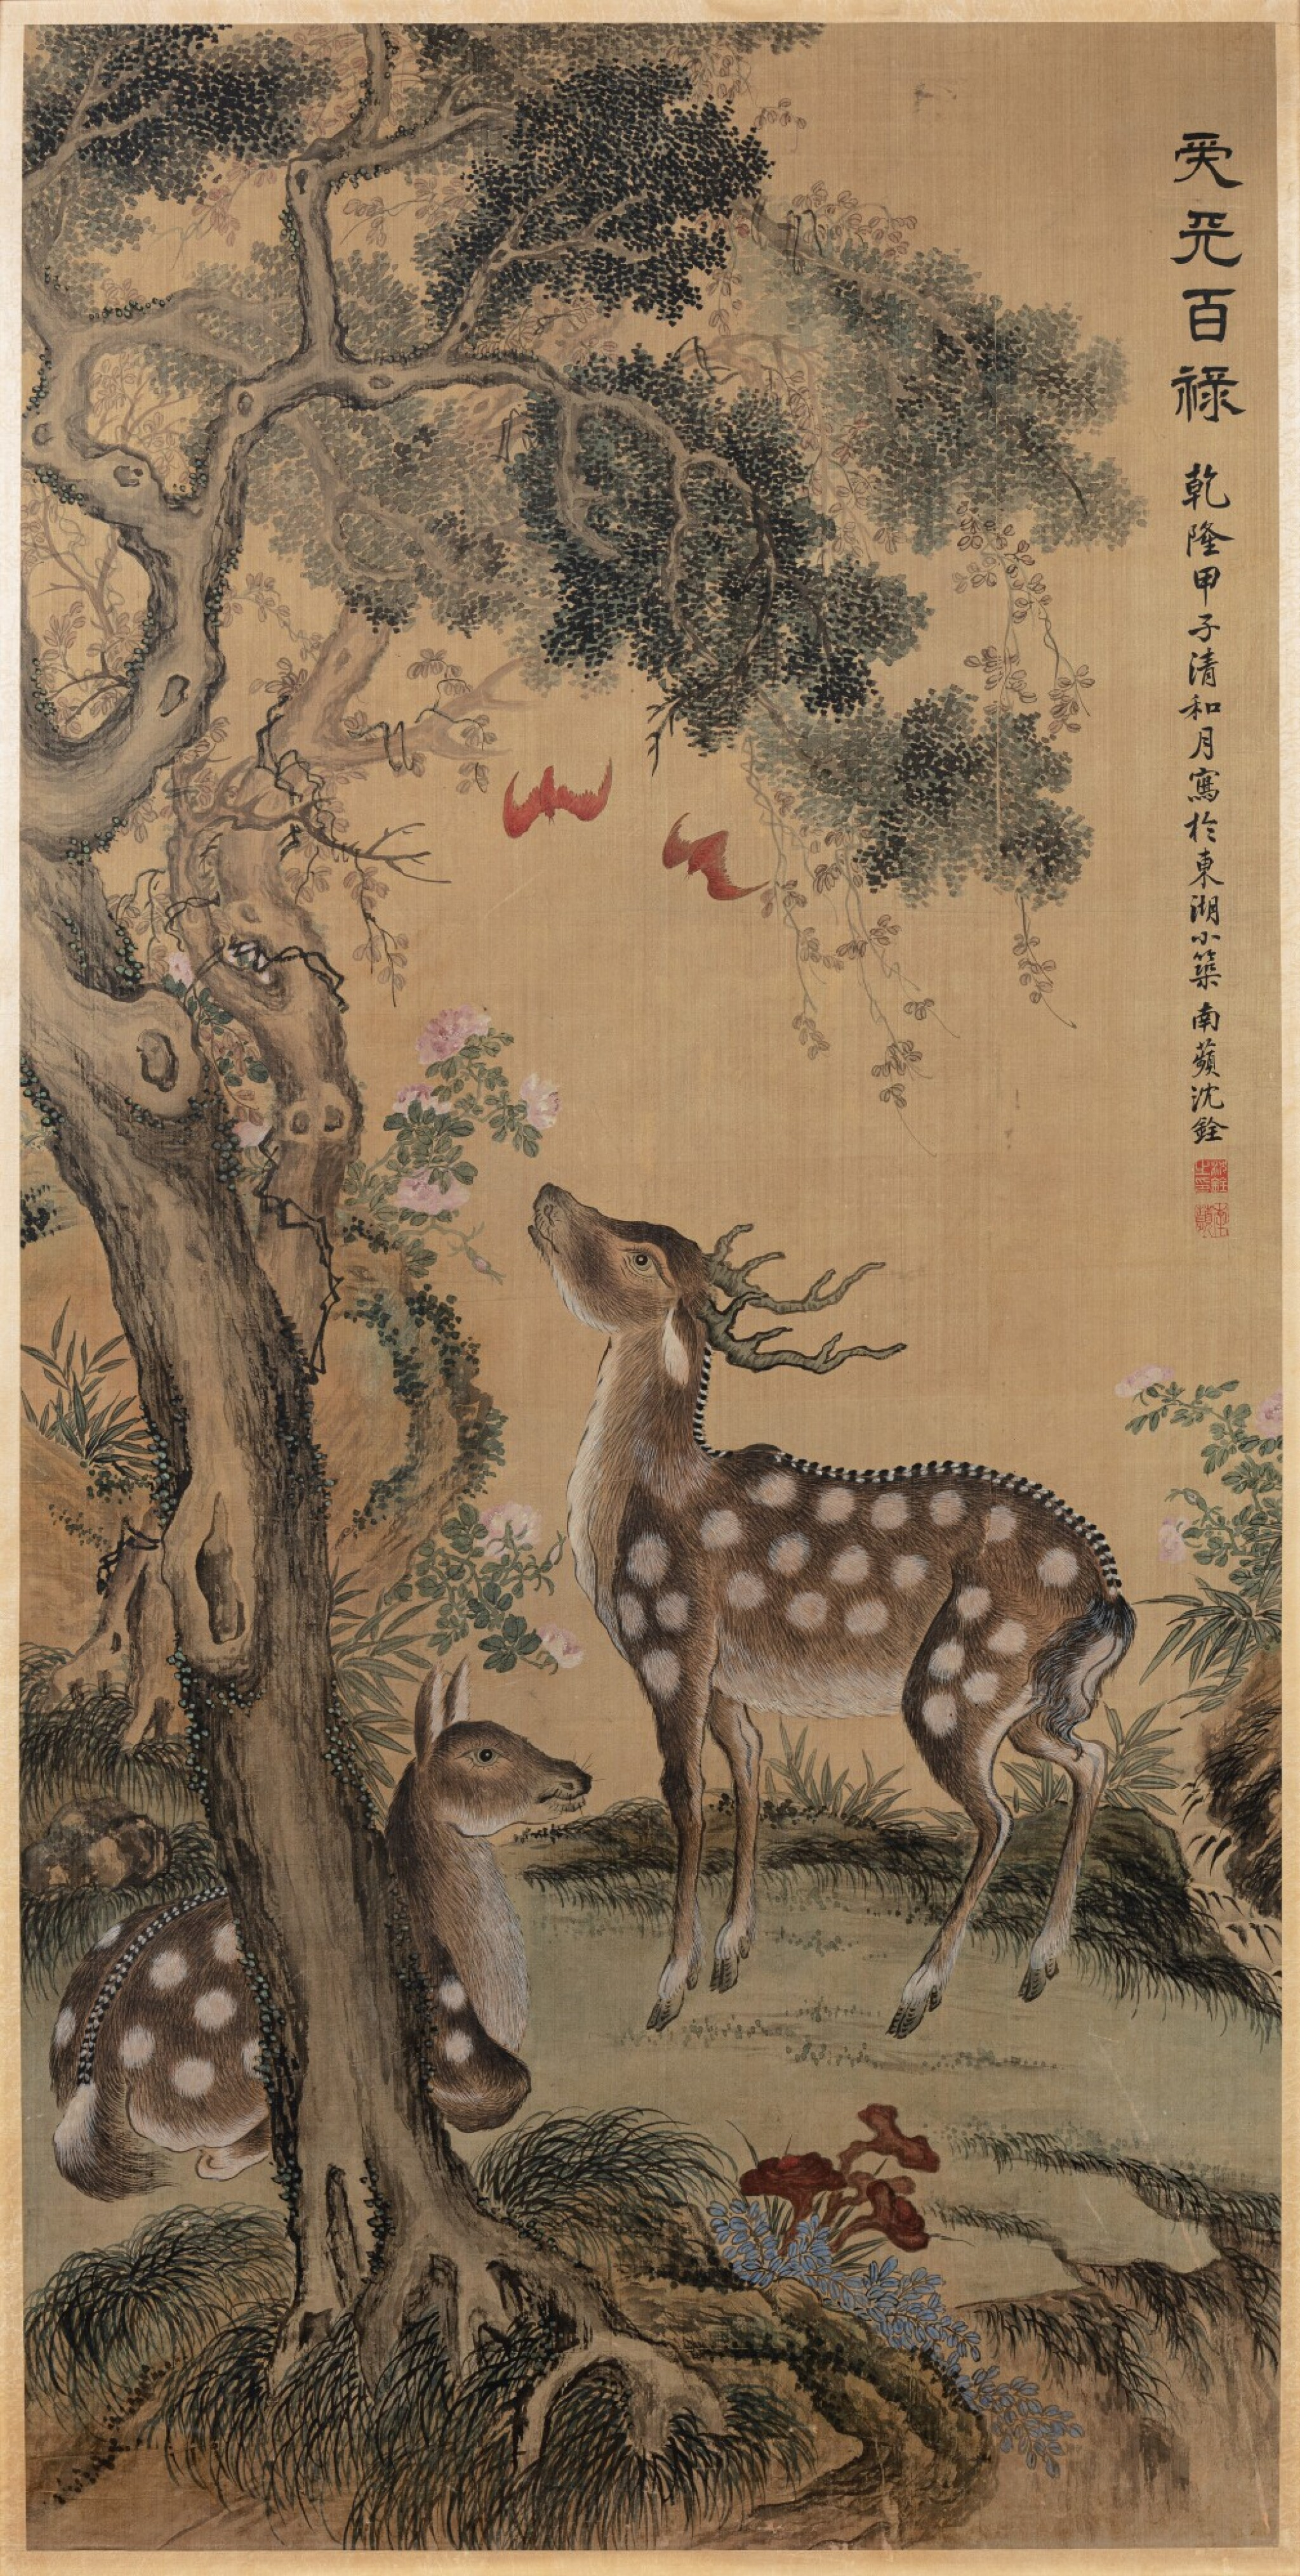 View 1 of Lot 236. Anonyme Deux cerfs Dynastie Qing, XVIIIE-XIXE siècle | 清十八至十九世紀 沈銓(款) 雙鹿圖 | Anonymous  Two deers.